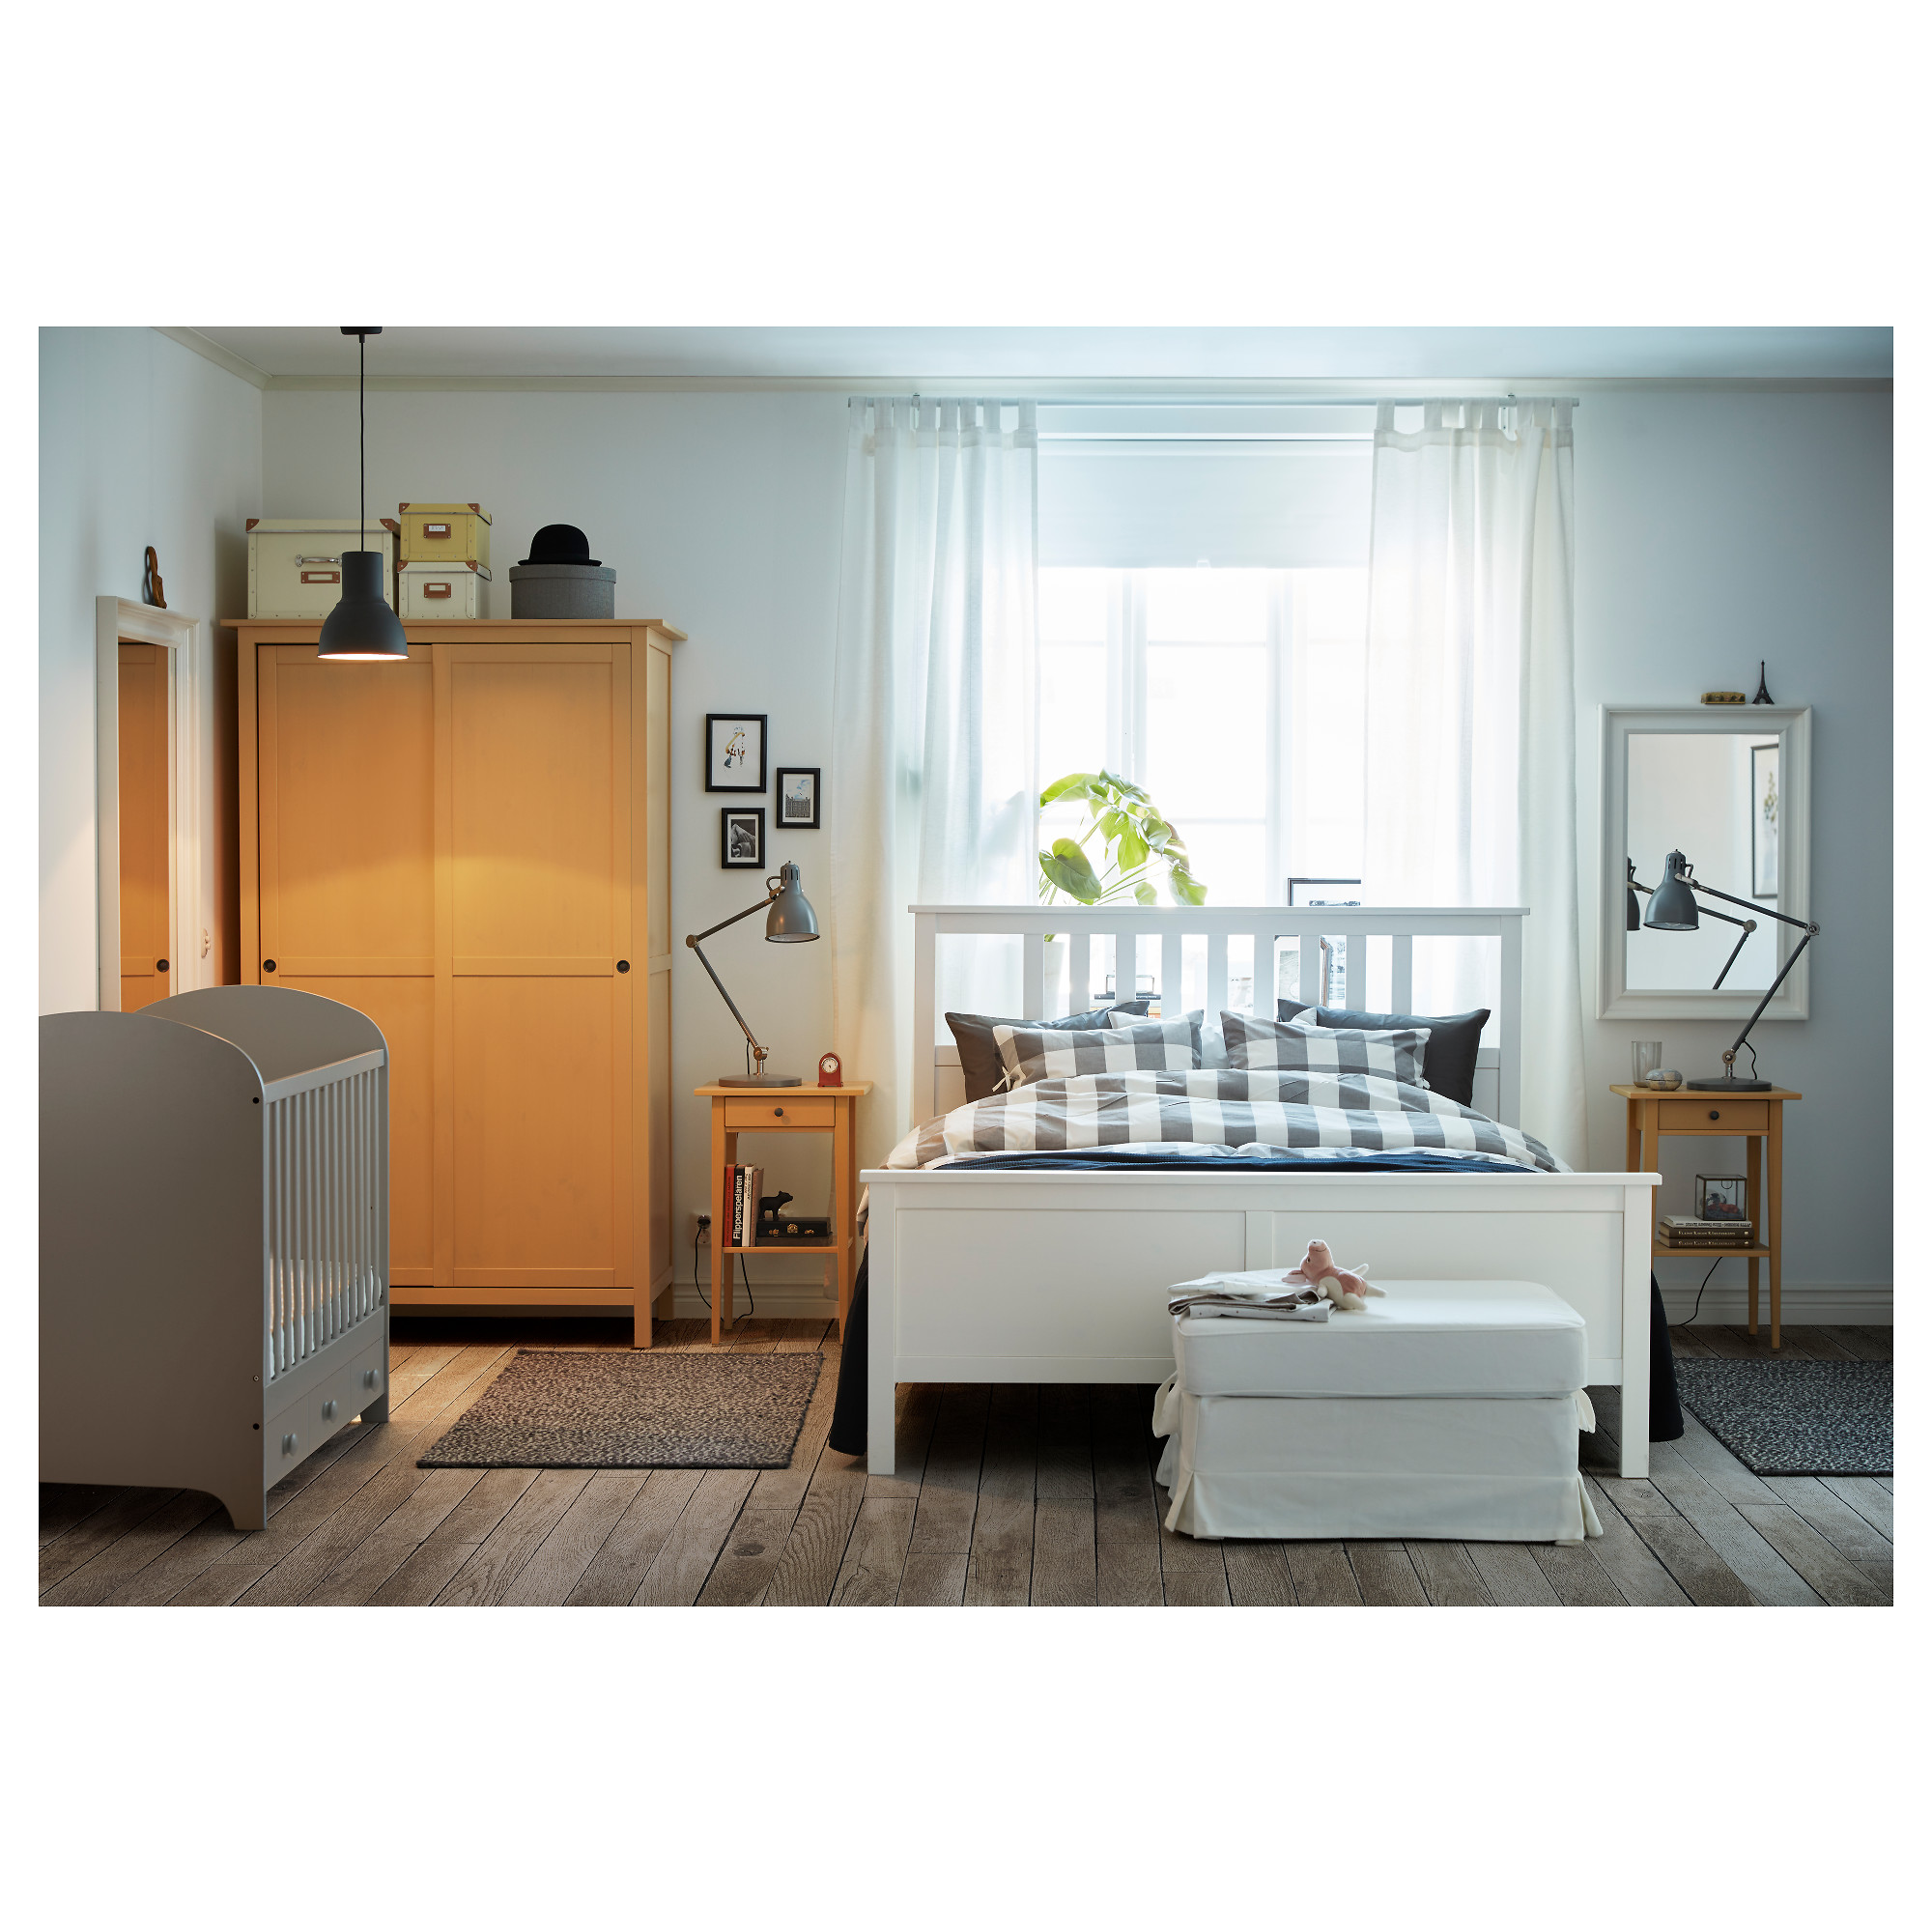 chevet suspendu ikea excellent chevet suspendu leroy. Black Bedroom Furniture Sets. Home Design Ideas